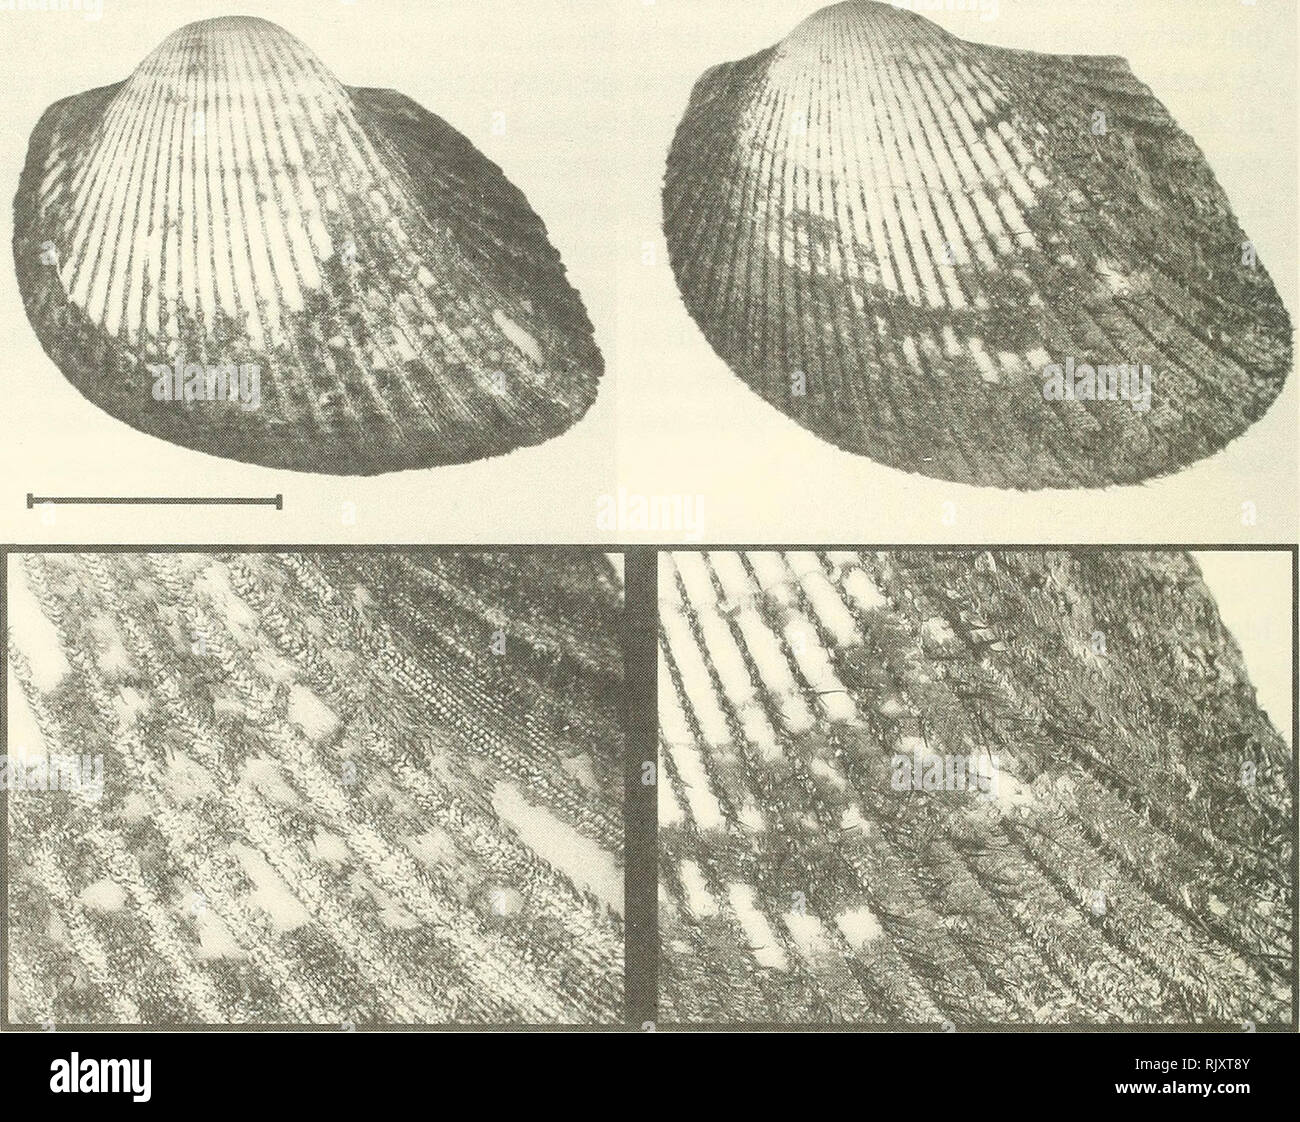 . Atoll research bulletin. Coral reefs and islands; Marine biology; Marine sciences. 4. The shell of A. antiquata is less inflated, more posteriorly produced (umbo lying relatively more anteriorly), and has the posterior slope gently demarcated. In contrast, the posterior slope of A. uropigimelana is offset by a strong break in slope from the rest of the shell. Anadara antiquata has 35-39 ribs among the samples we examined compared with 31-35 in A uropigimelana.. Figure 2. Anadara uropigimelana (left, Tarawa, UF 282607; Tarawa) and Anadara antiquata (right, UF 282606, Tonga). Scalebar: 2 cm. B - Stock Image